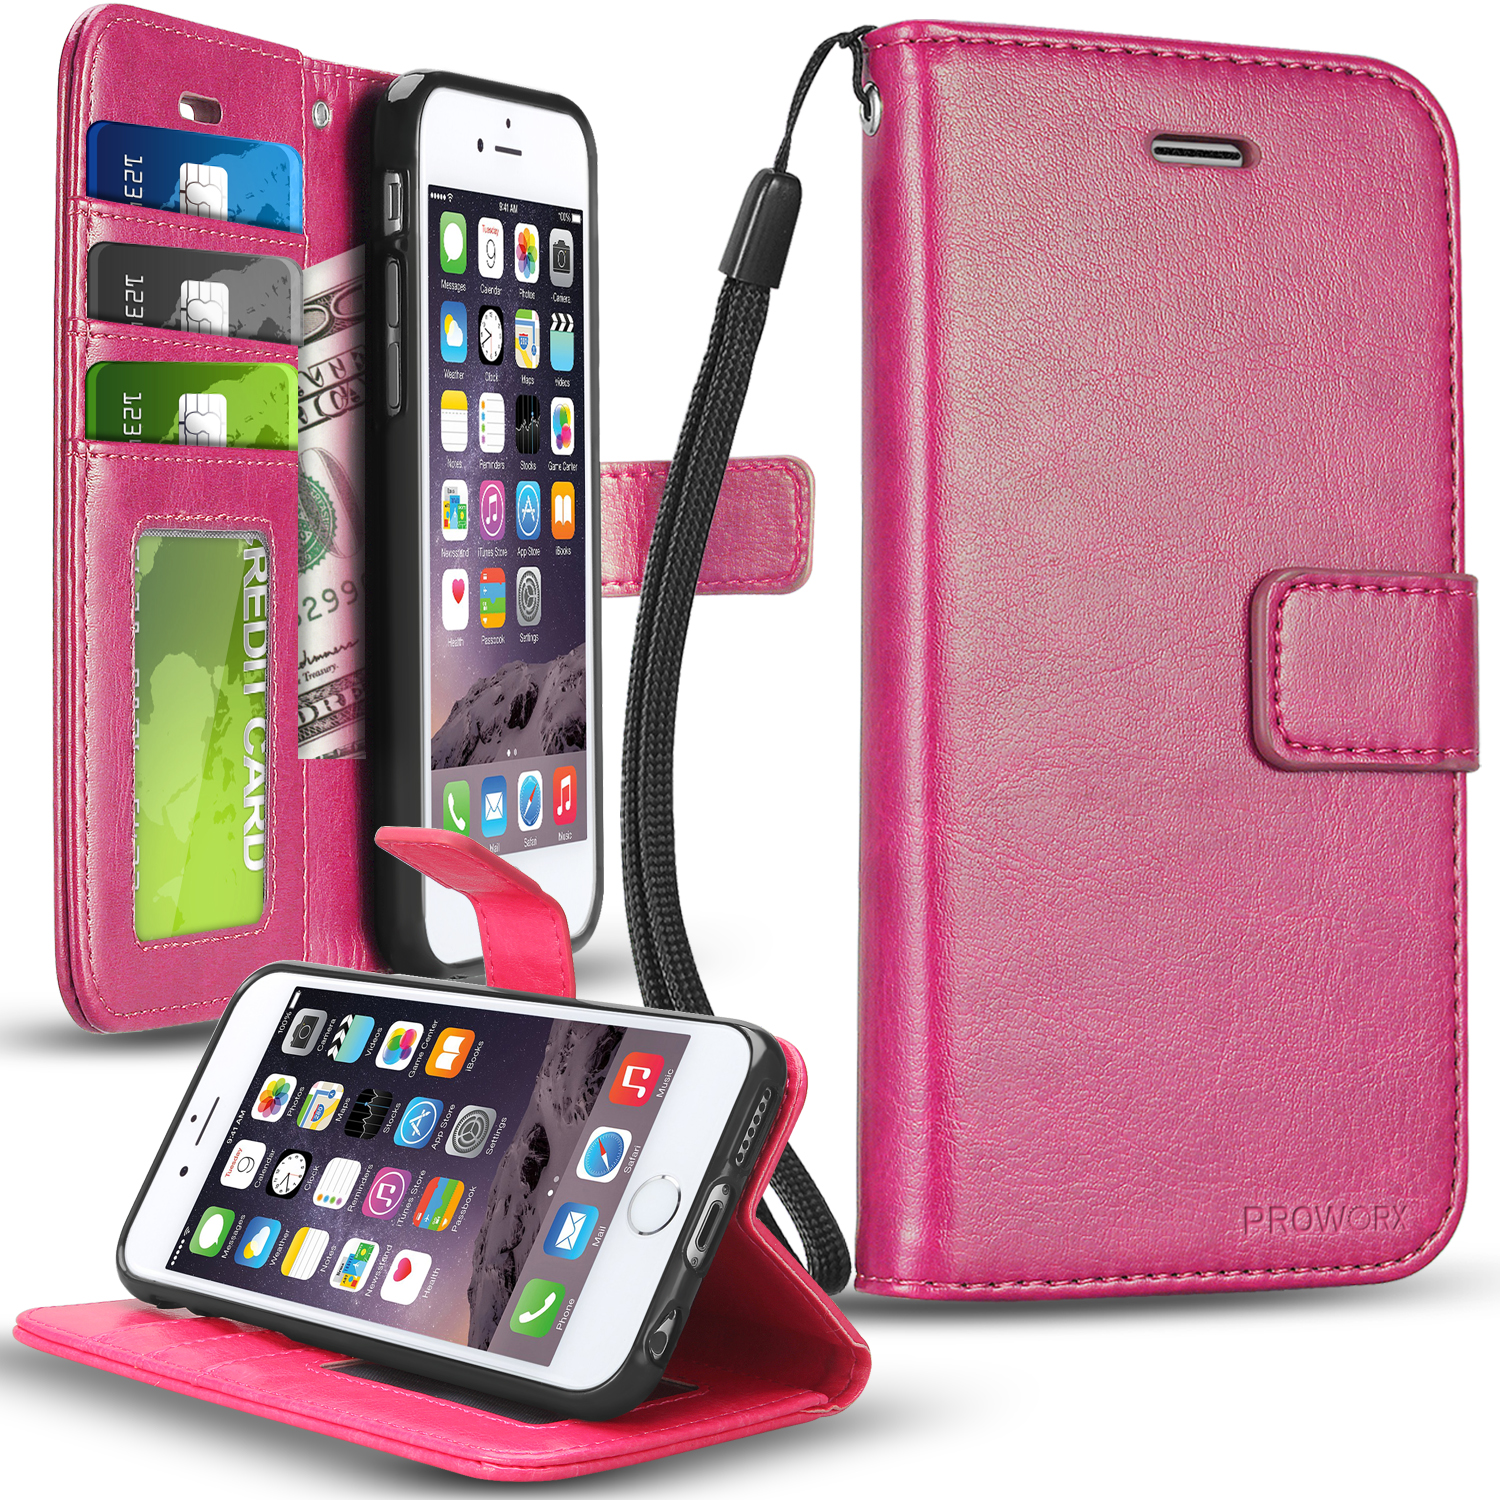 Apple iPhone 6 6S (4.7) Hot Pink ProWorx Wallet Case Luxury PU Leather Case Cover With Card Slots & Stand